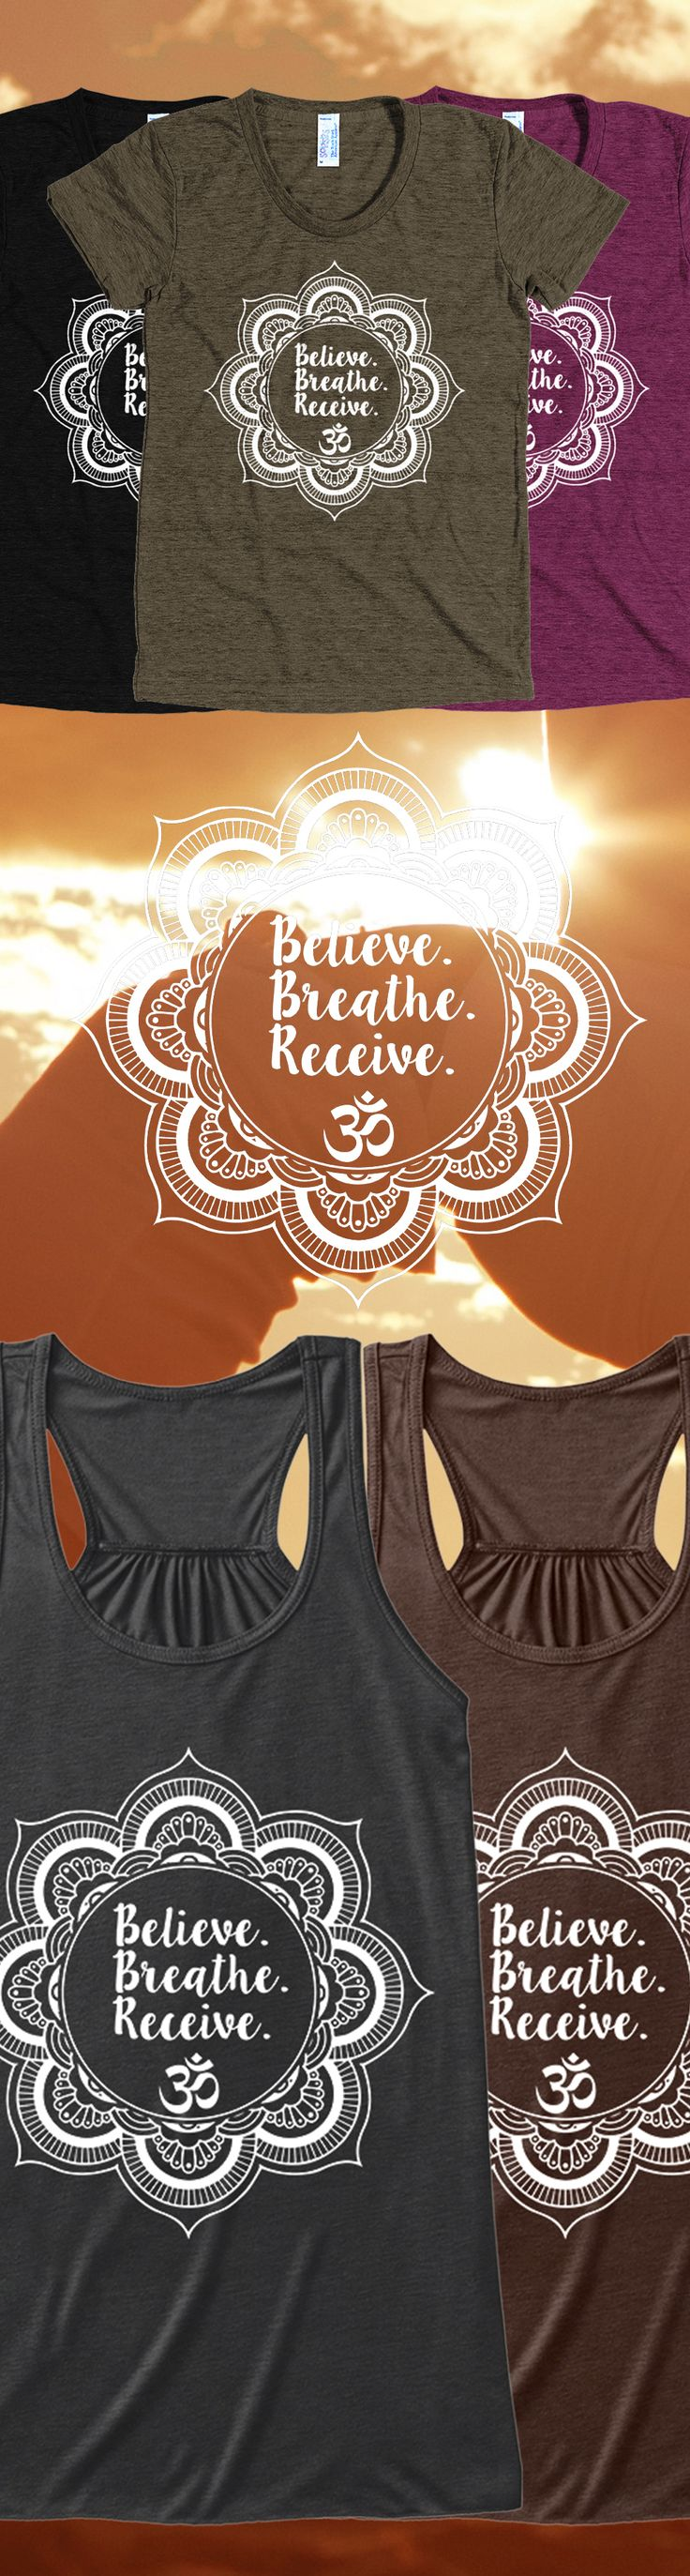 Love Yoga?! Check out this awesome yoga work out tank top you will not find anywhere else. Not sold in stores and only 2 days left for free shipping! Grab yours or gift it to a friend, you will both love it